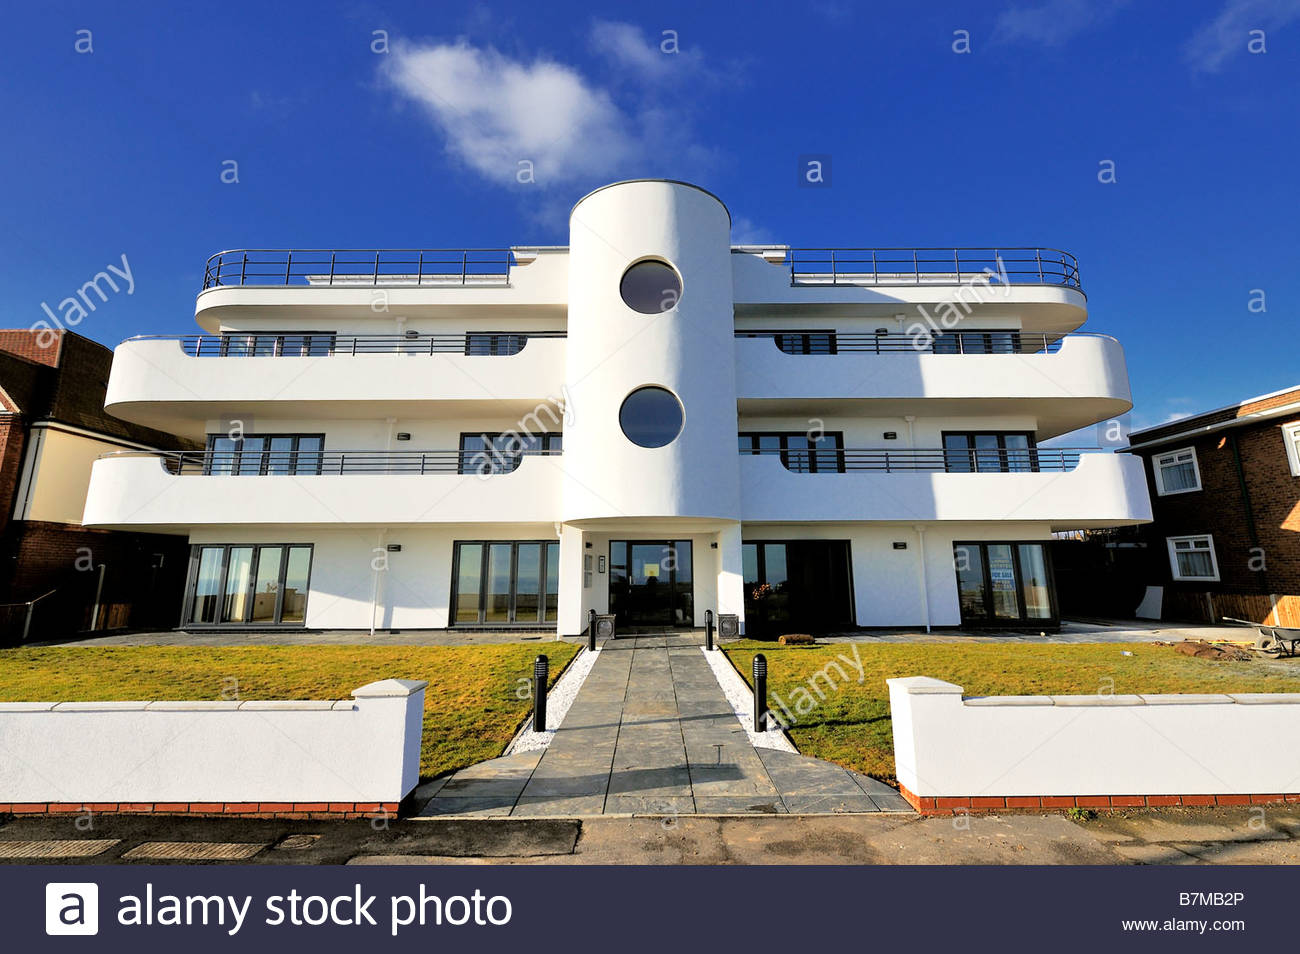 A new block of flats at Frinton-on-Sea built in the Art Deco style Stock Photo